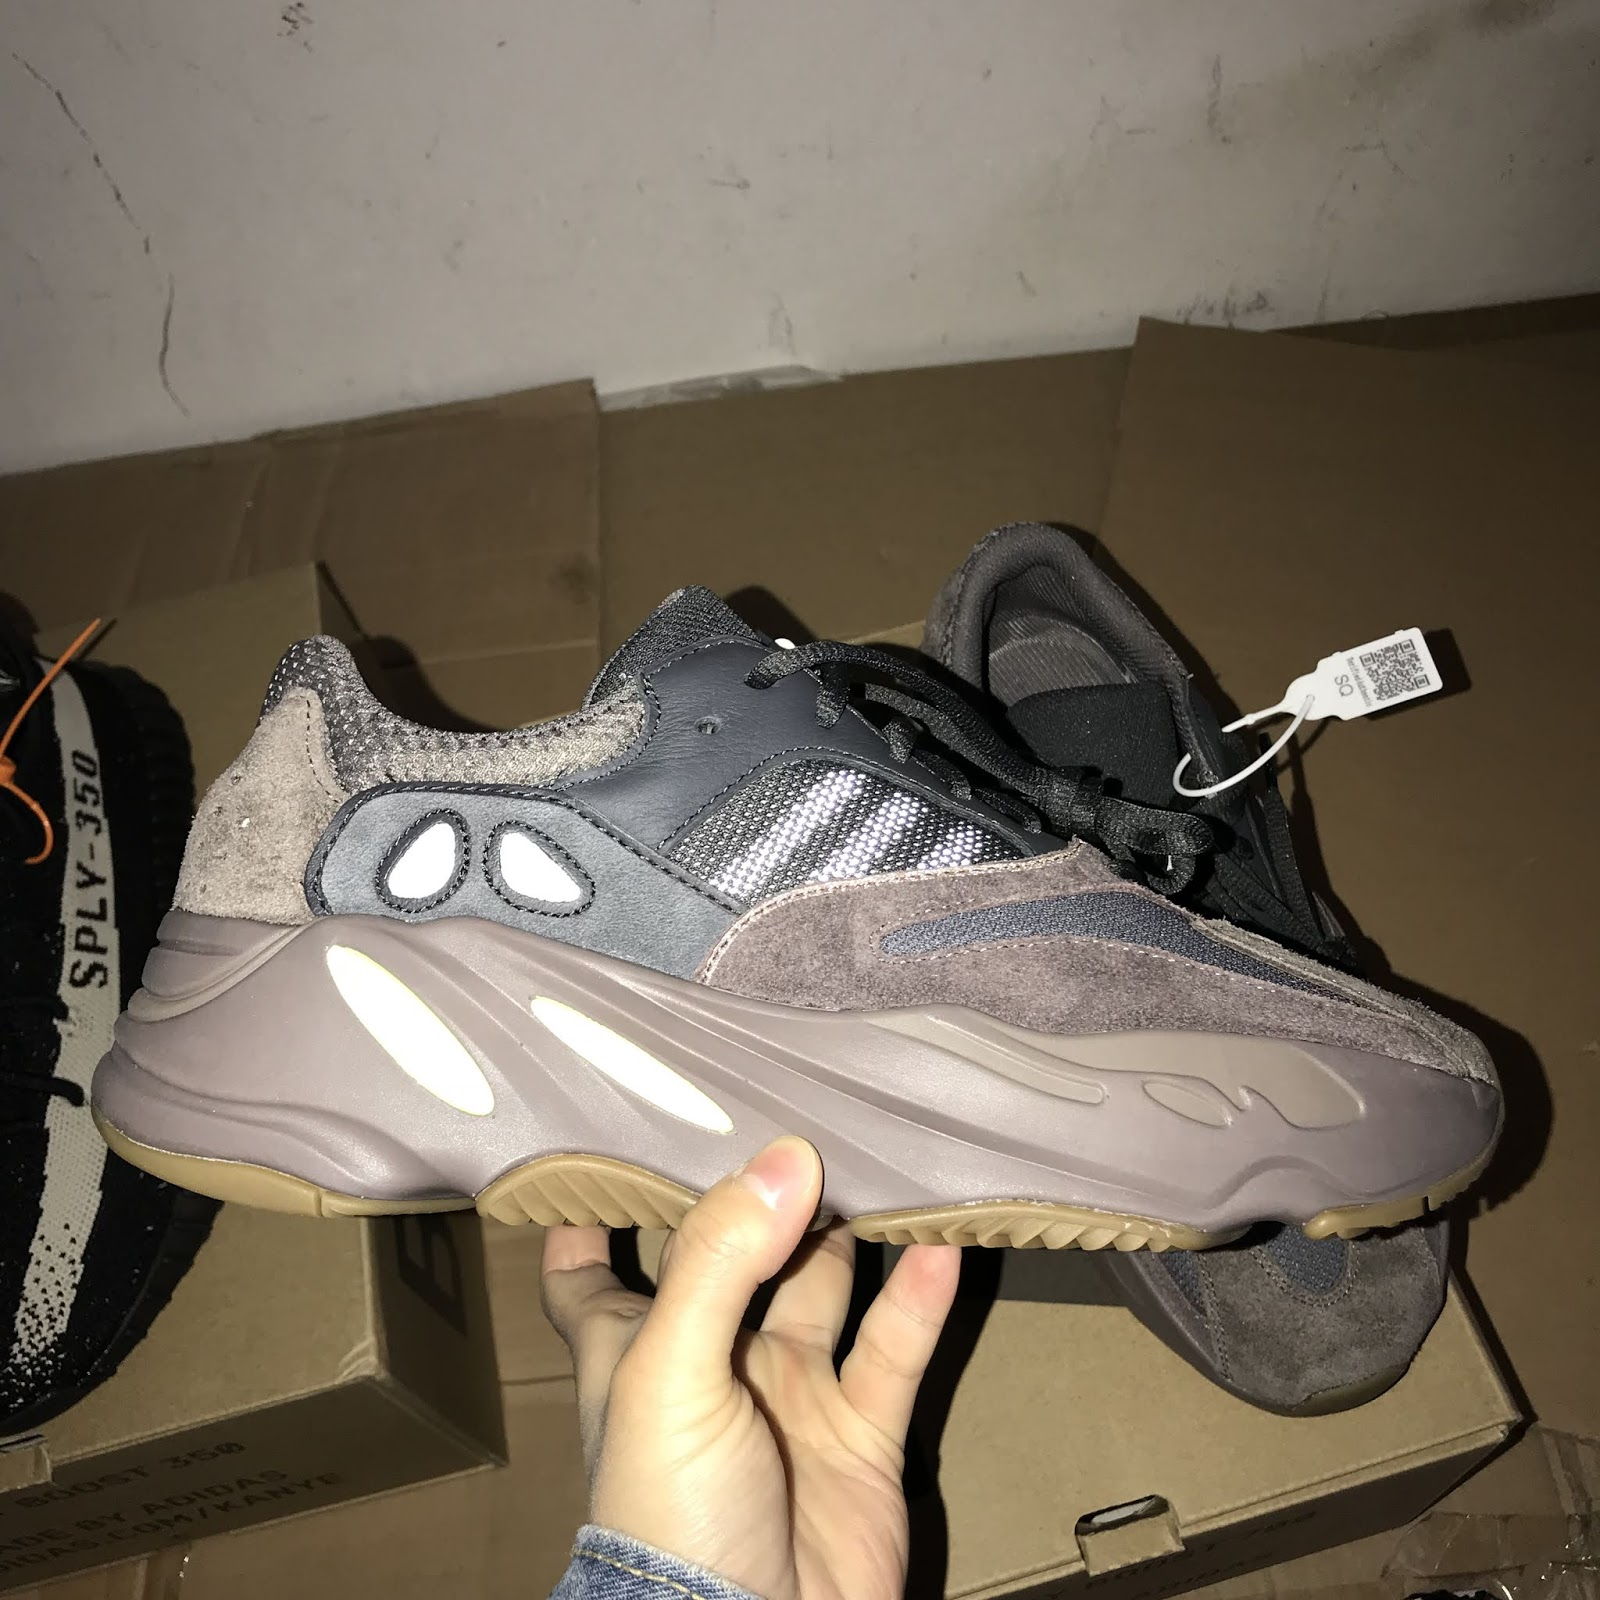 2d03807b01a45 Yeezy Boost 700 Mauve Not Selling On Youtube Free Adidas Nmd ...